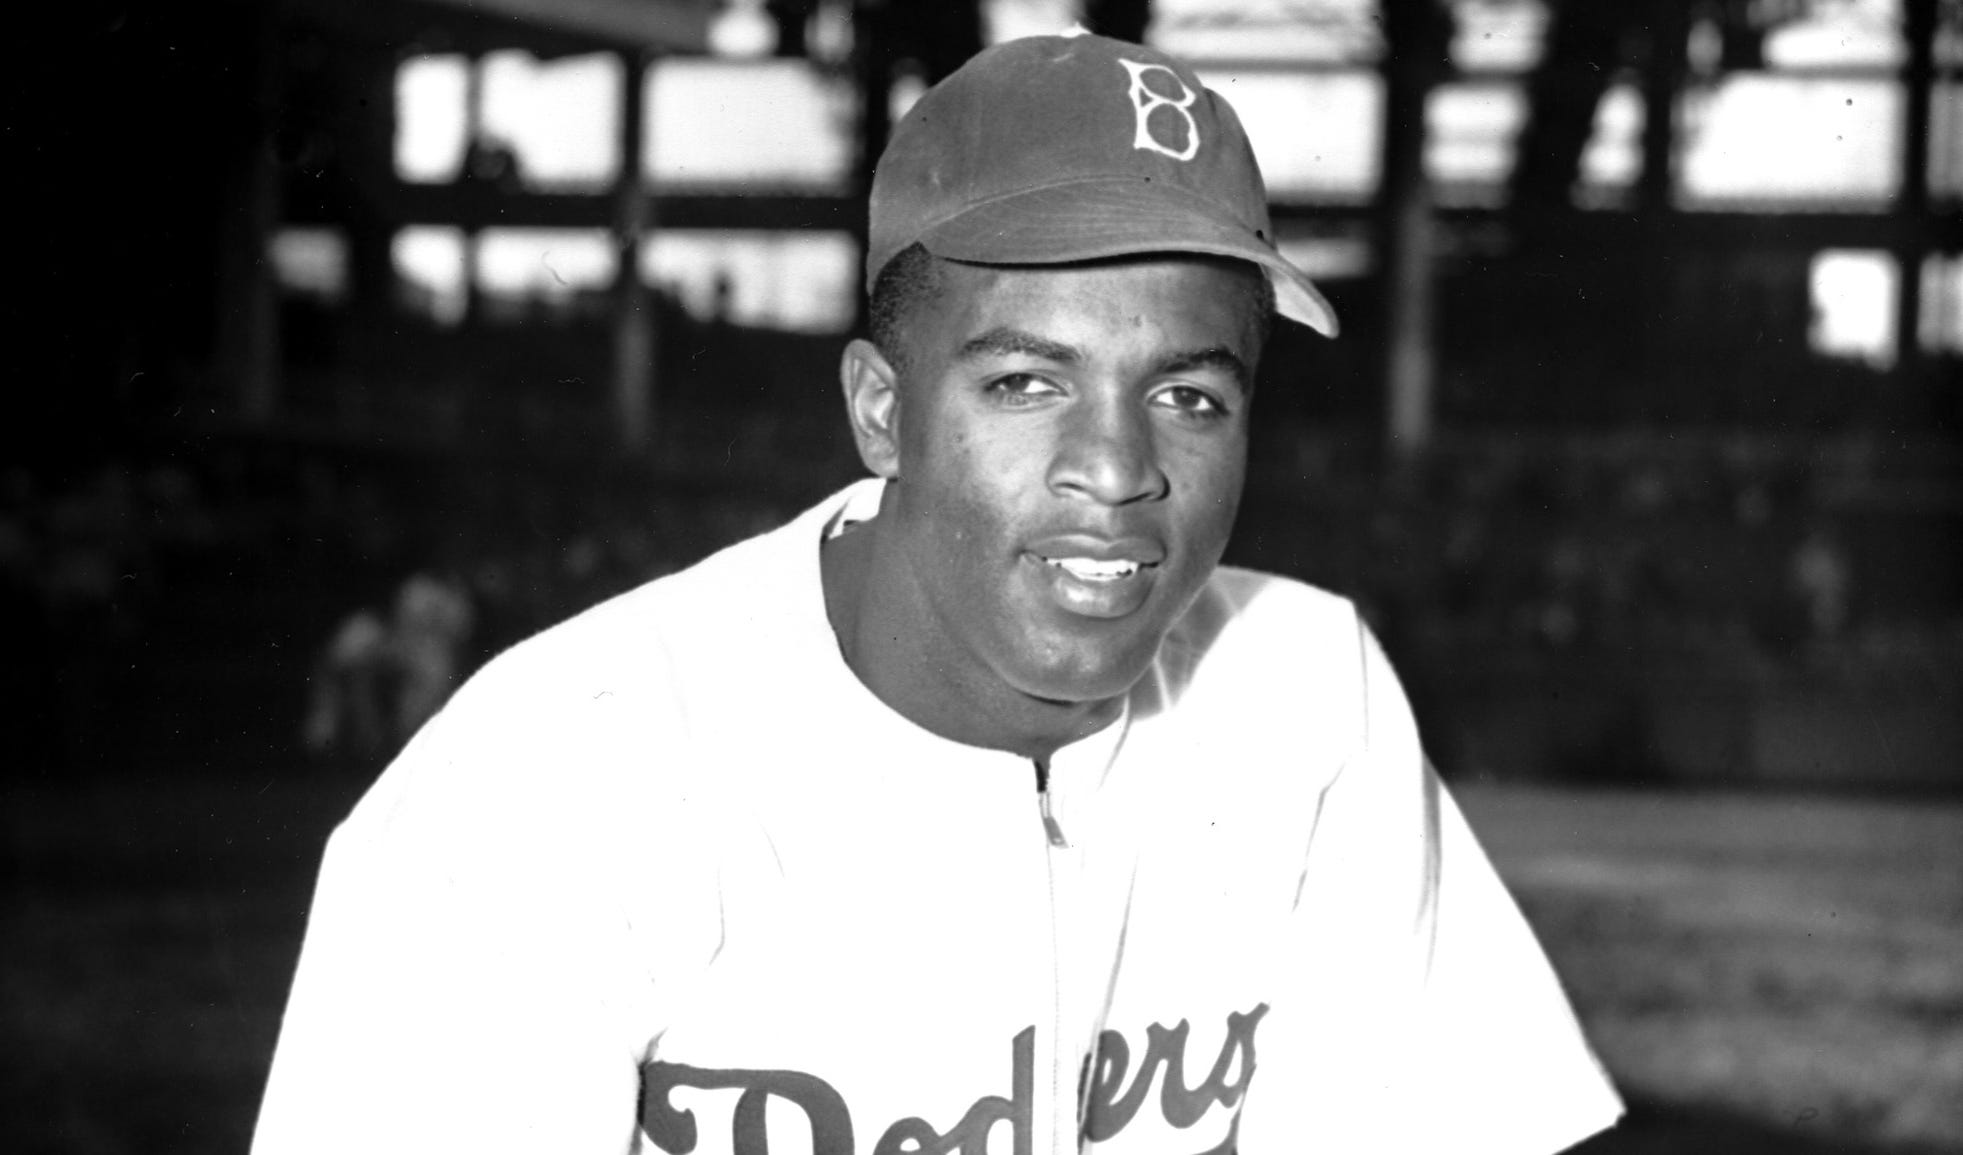 Robinson poses at Ebbets Field in April 1947.